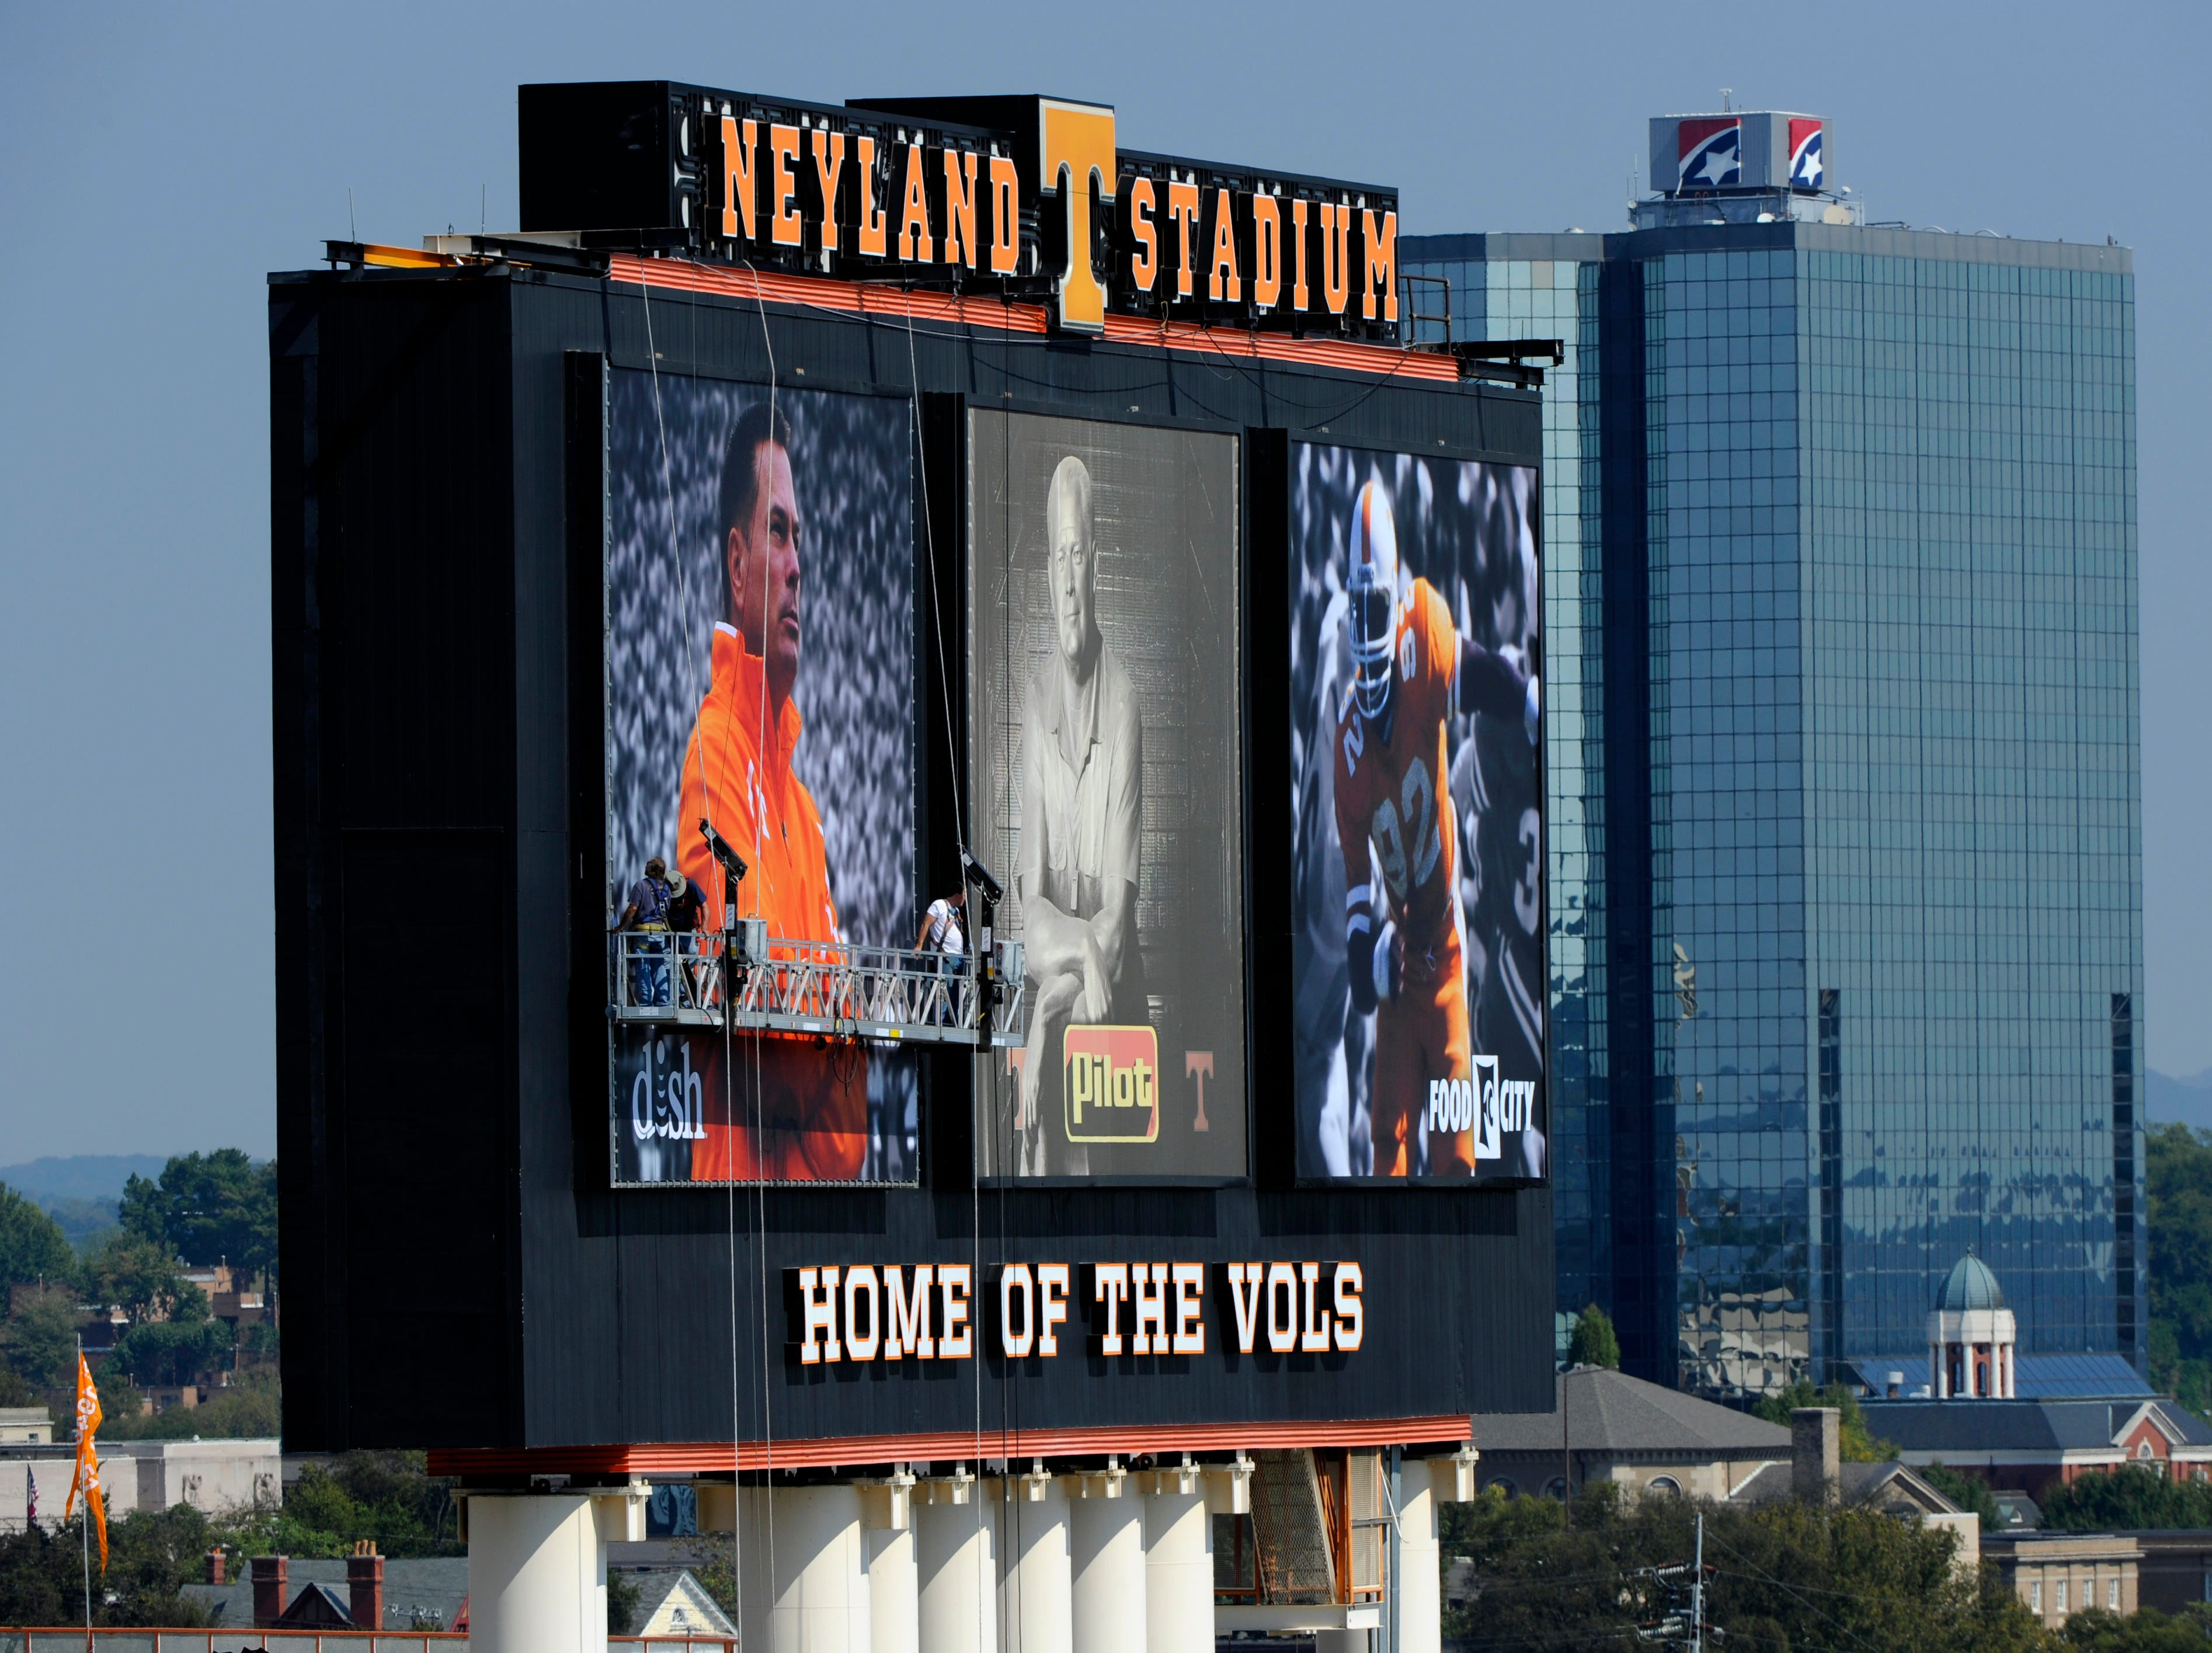 Workers securing a photo of Tennessee coach Butch Jones along side Gen. Neyland and Reggie White on the jumbotron at Neyland Stadium Thursday, Oct. 2, 2014.